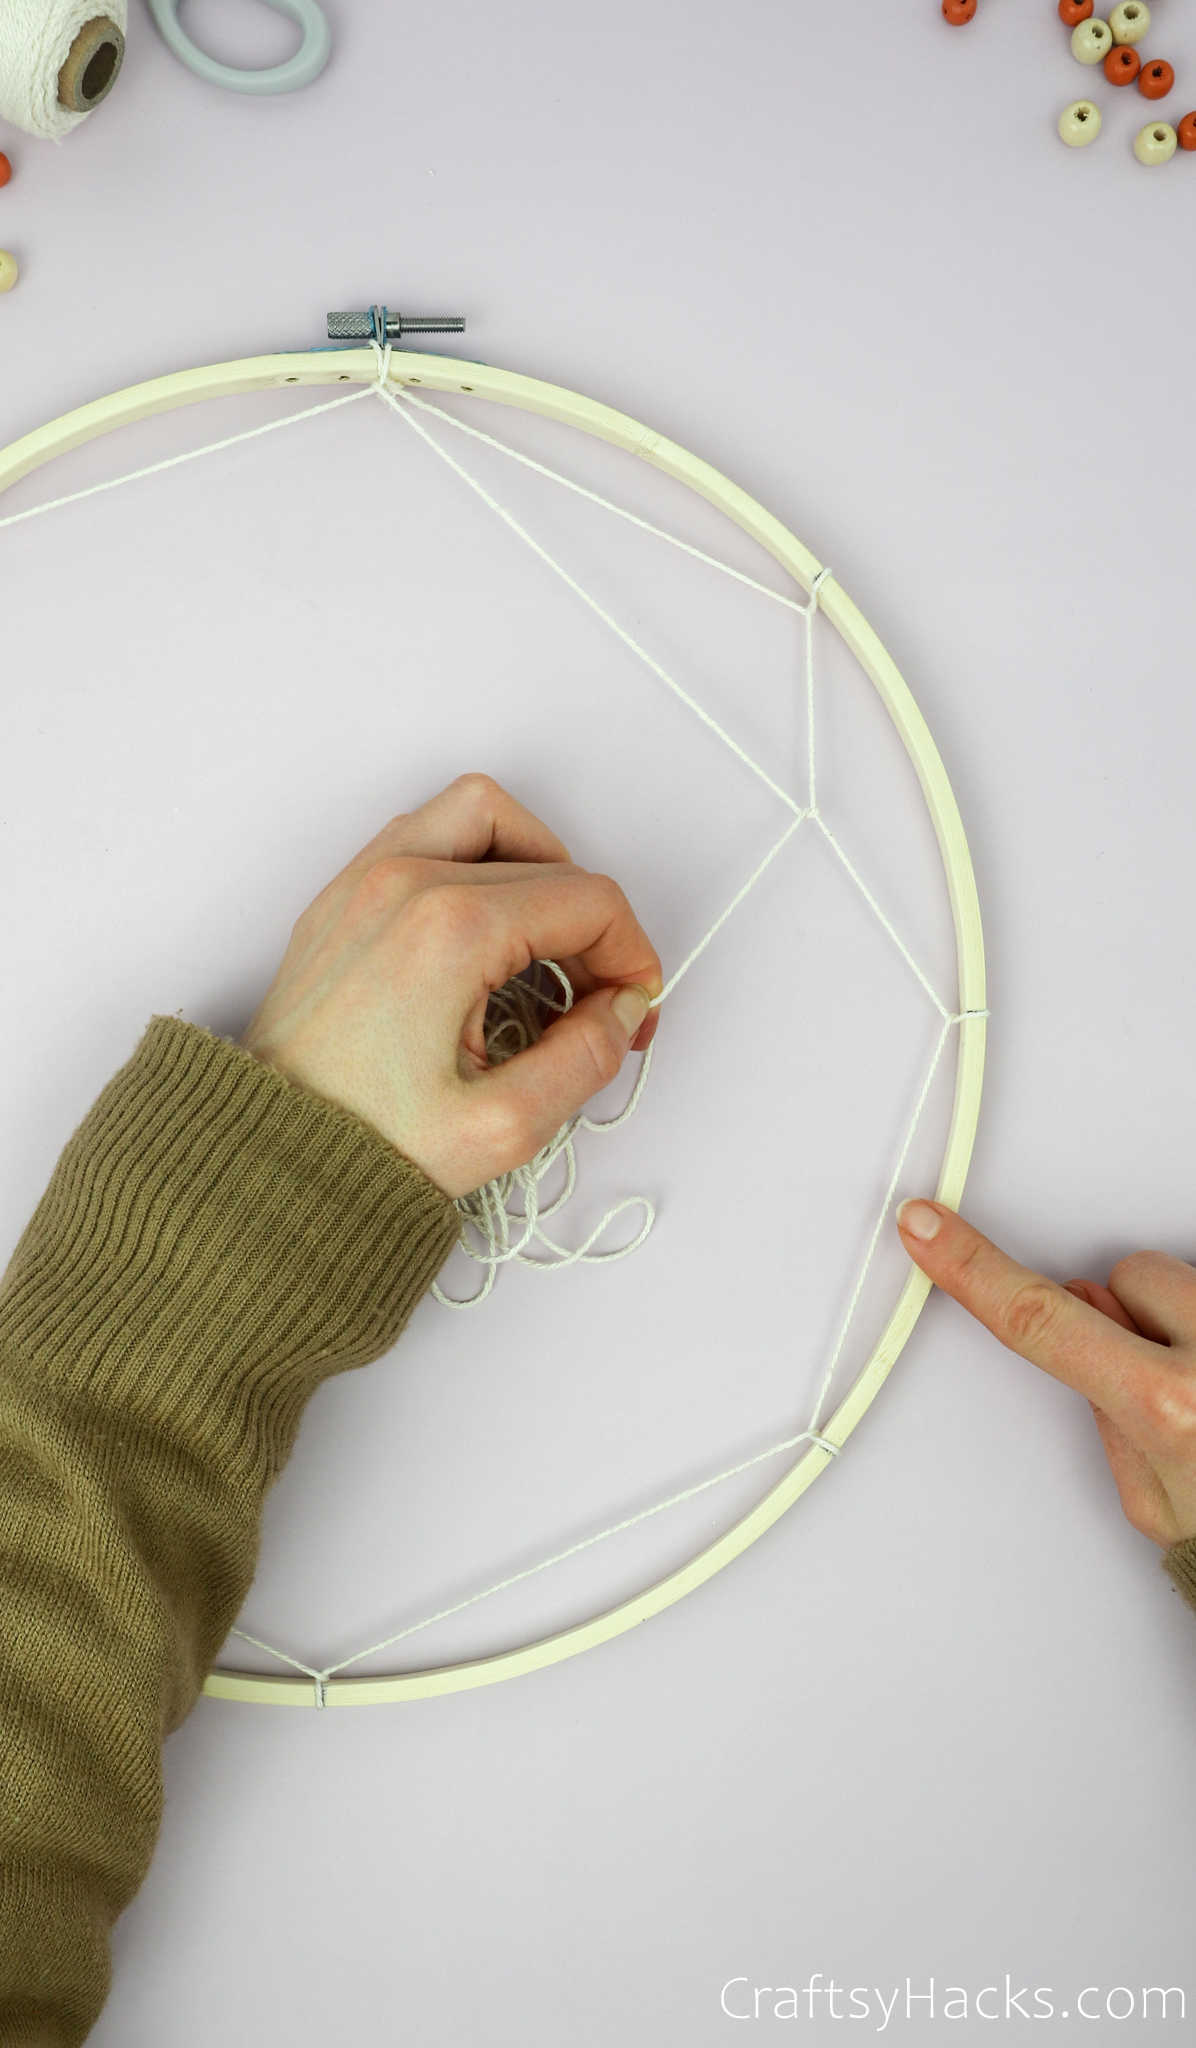 wrapping next row of string